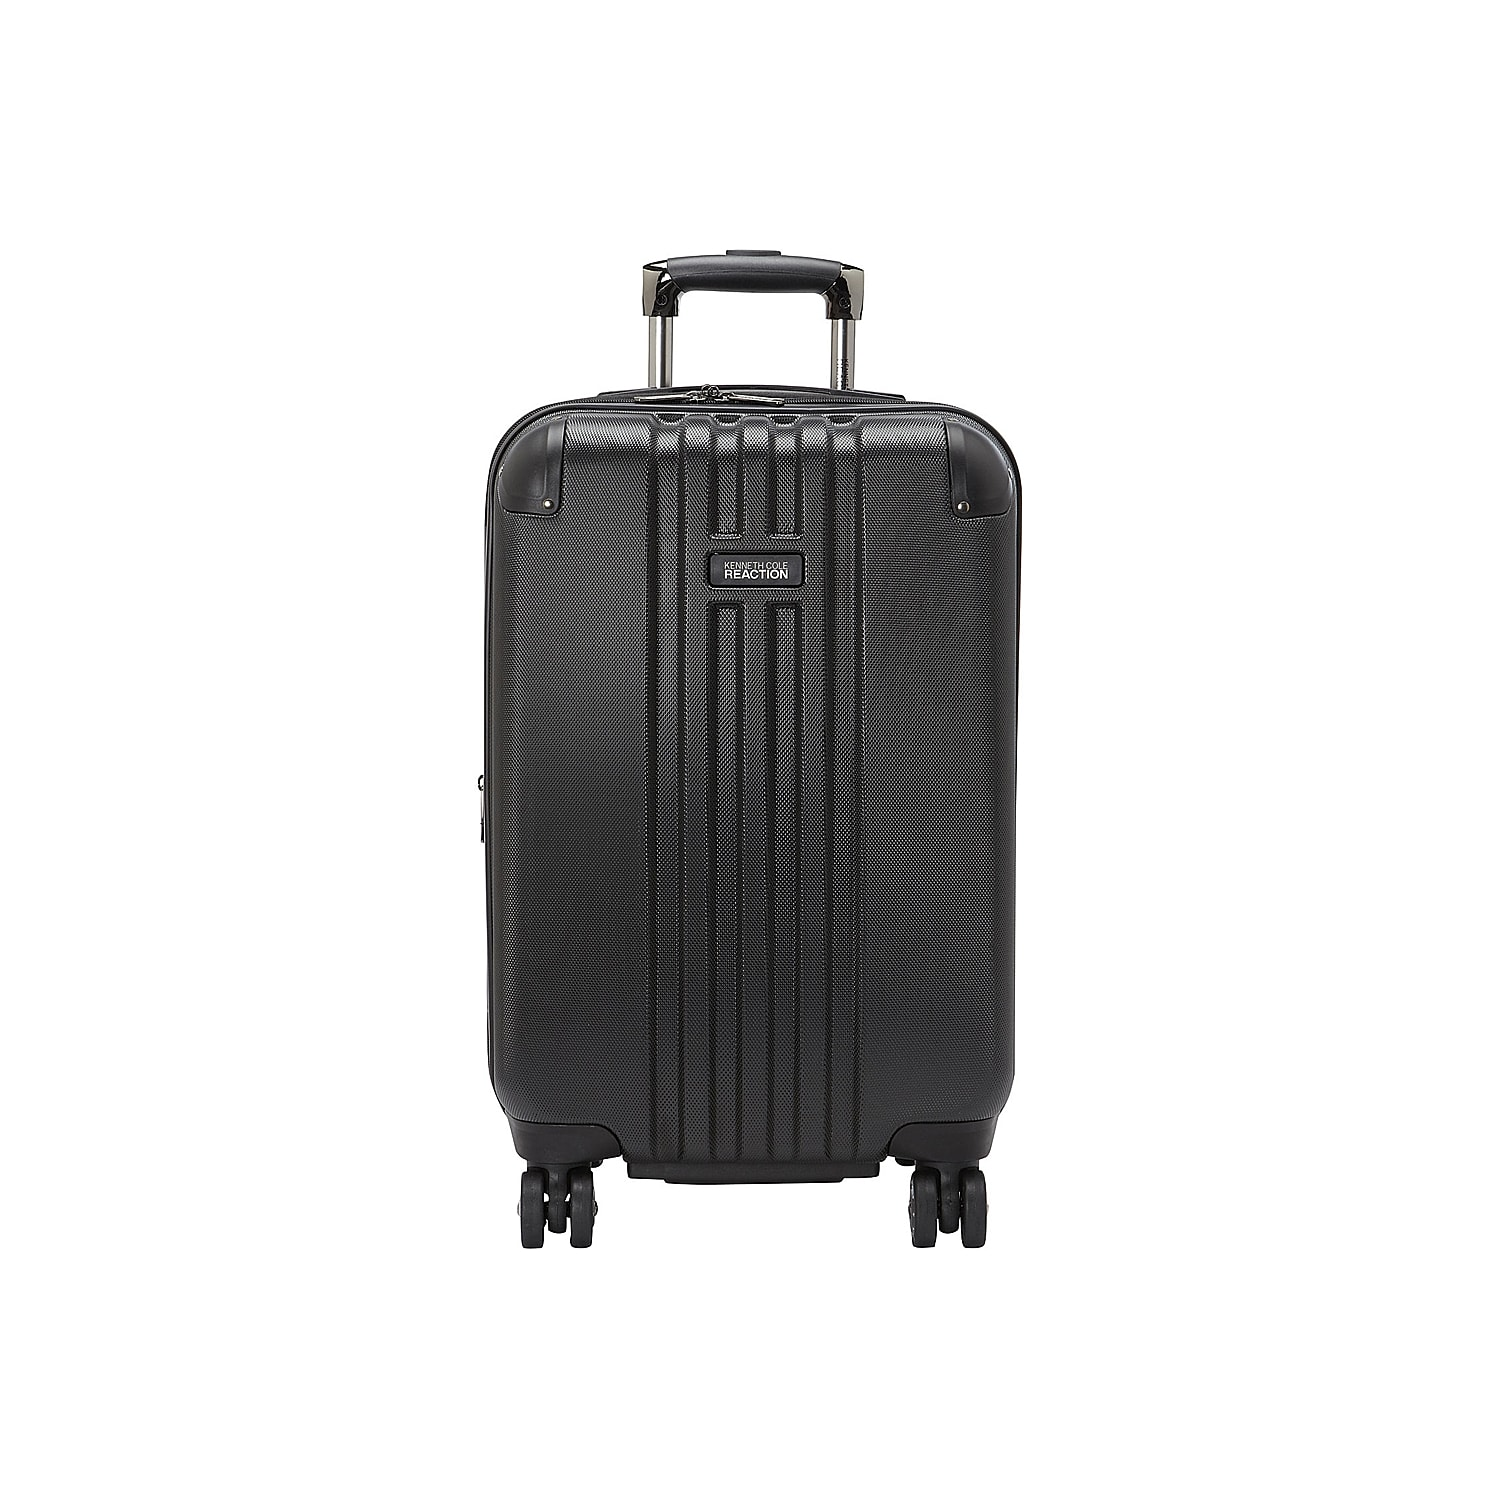 Fly through airport terminals with this free-weight rolling suitcase from Kenneth Cole Reaction. The Corner Guard expandable luggage is fitted with 8 multi-directional spinners, molded reinforcements on all four sides, and a durable hardcase exterior. A lightweight construction helps you avoid additional airport fees, and the flexible handles allow for easy lifting into overhead bins or off of conveyor belts.